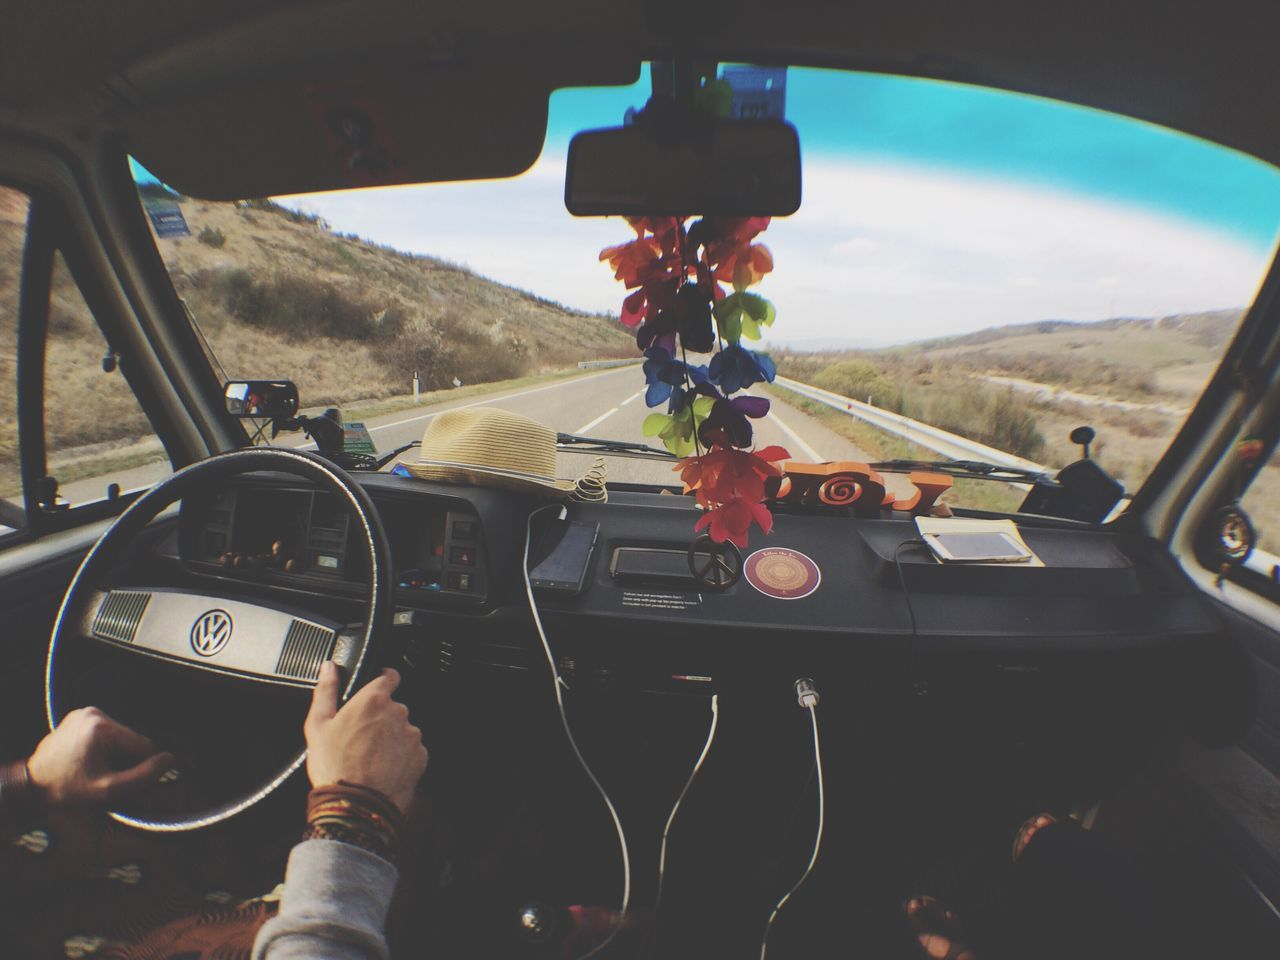 Road Trip! Roadtrip Wolswagen Westfalia Hippielife Driving Ontheroad Car Interior Holiday Hands EyEmNewHere Eyem Gallery Eyemphotography